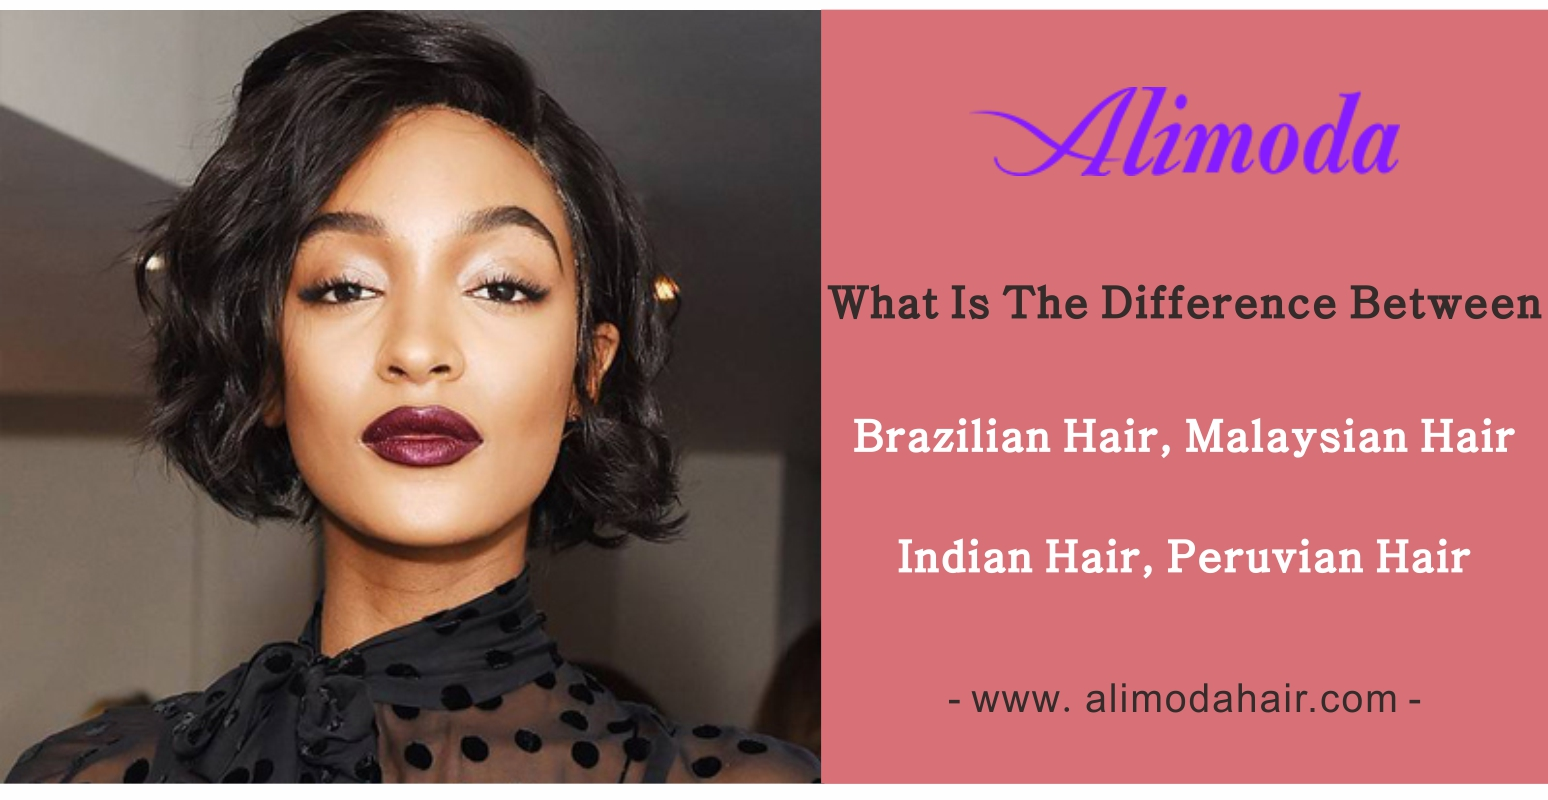 What is the difference between Brazilian hair, Malaysian hair, Indian hair and Peruvian hair?